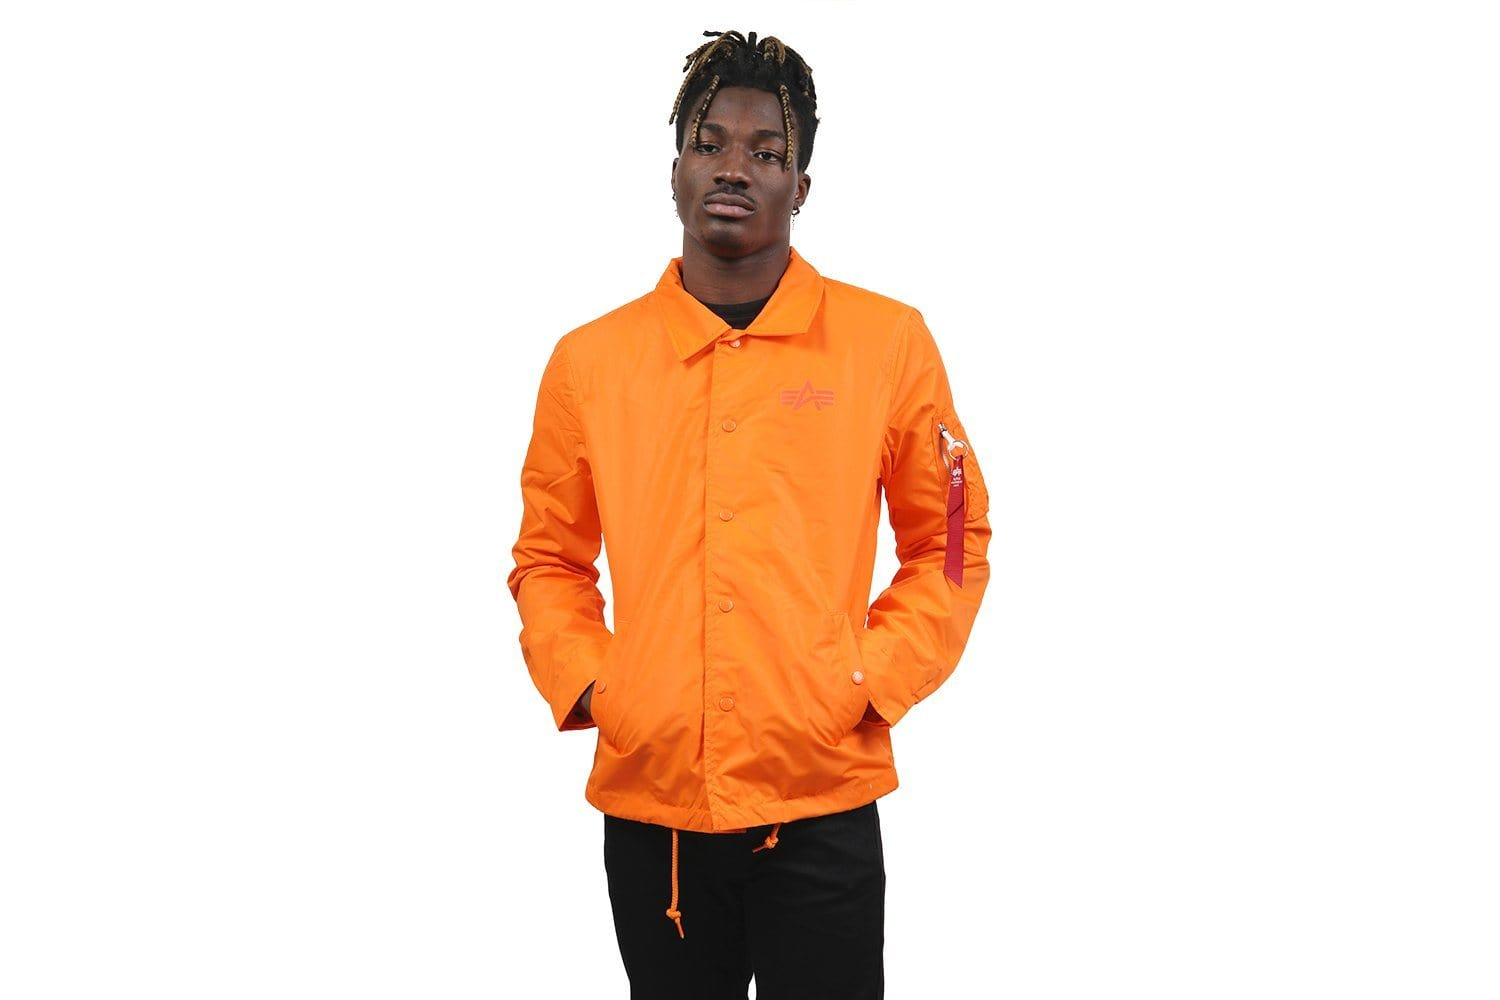 LIGHTWEIGHT COACHES JACKET - MJL49000C1.819 MENS SOFTGOODS ALPHA INDUSTRIES EMERGENCY ORANGE S